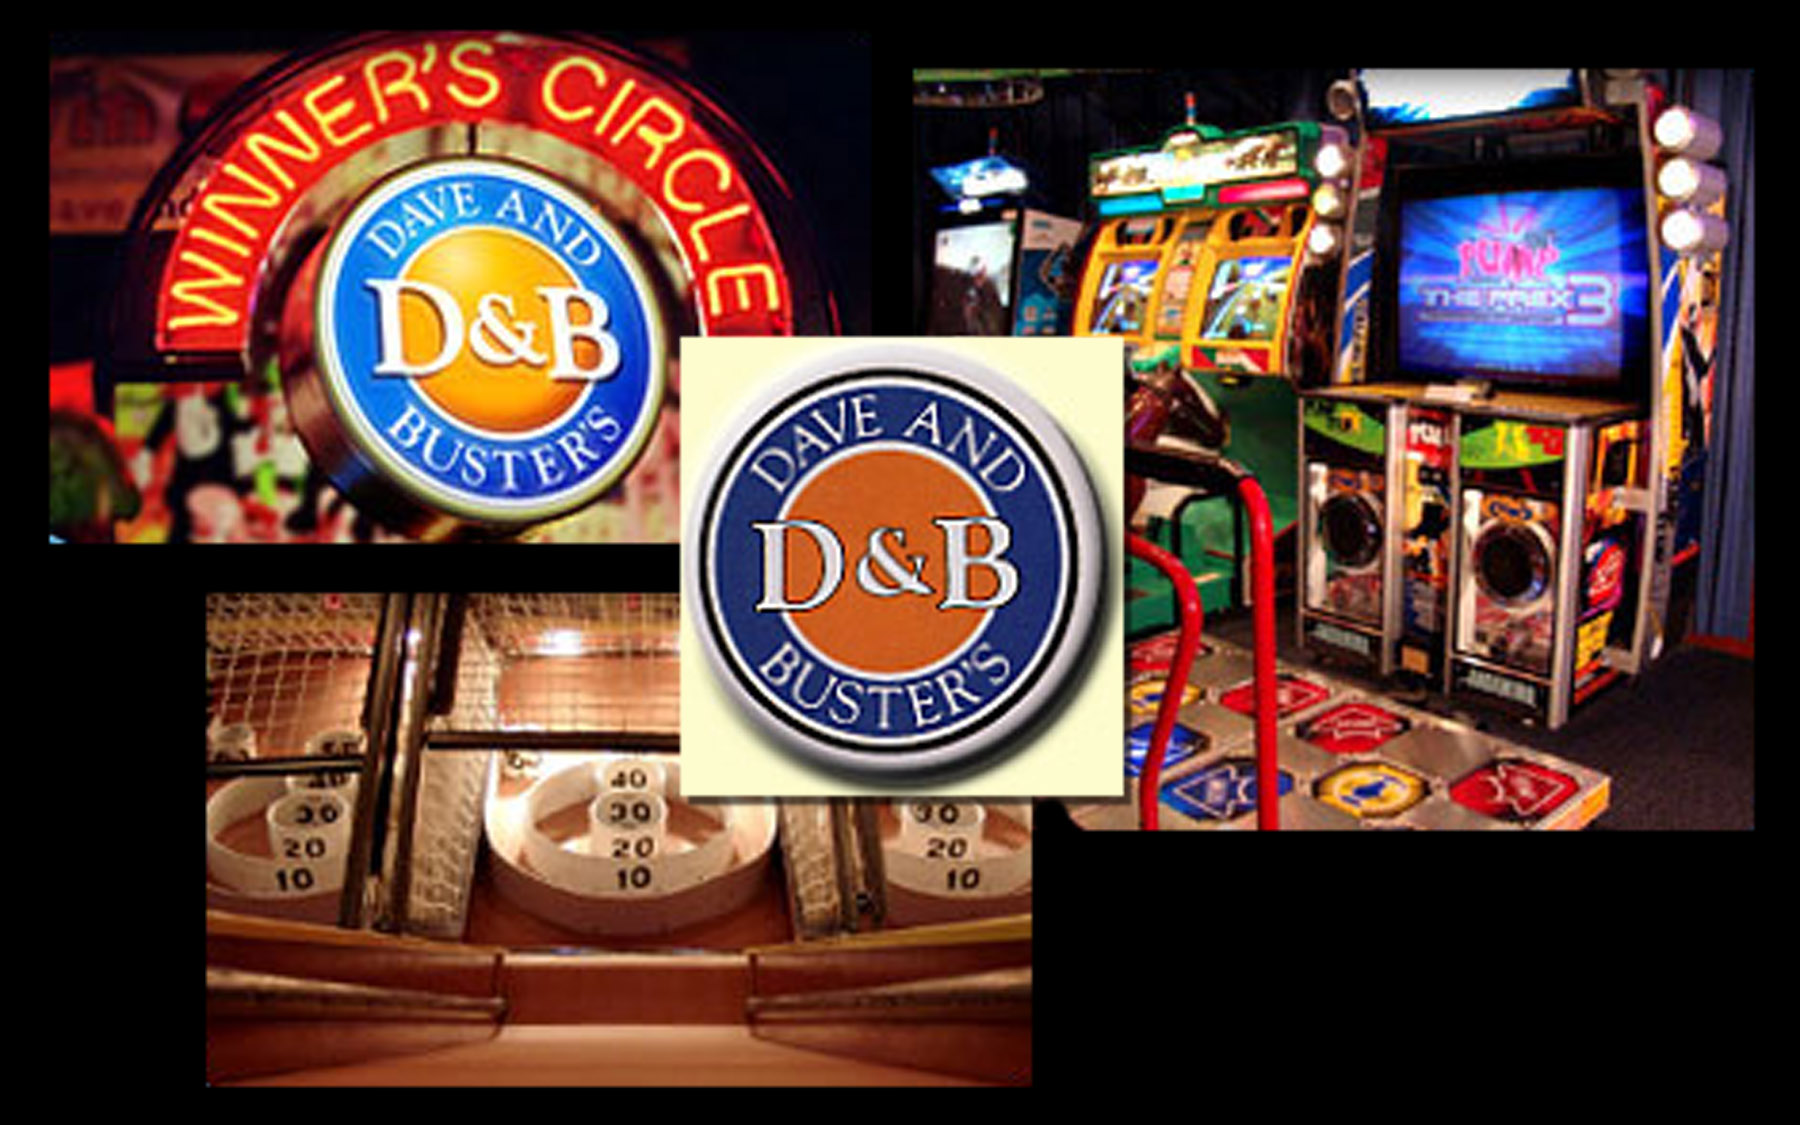 Dave & Buster's in Addison, IL